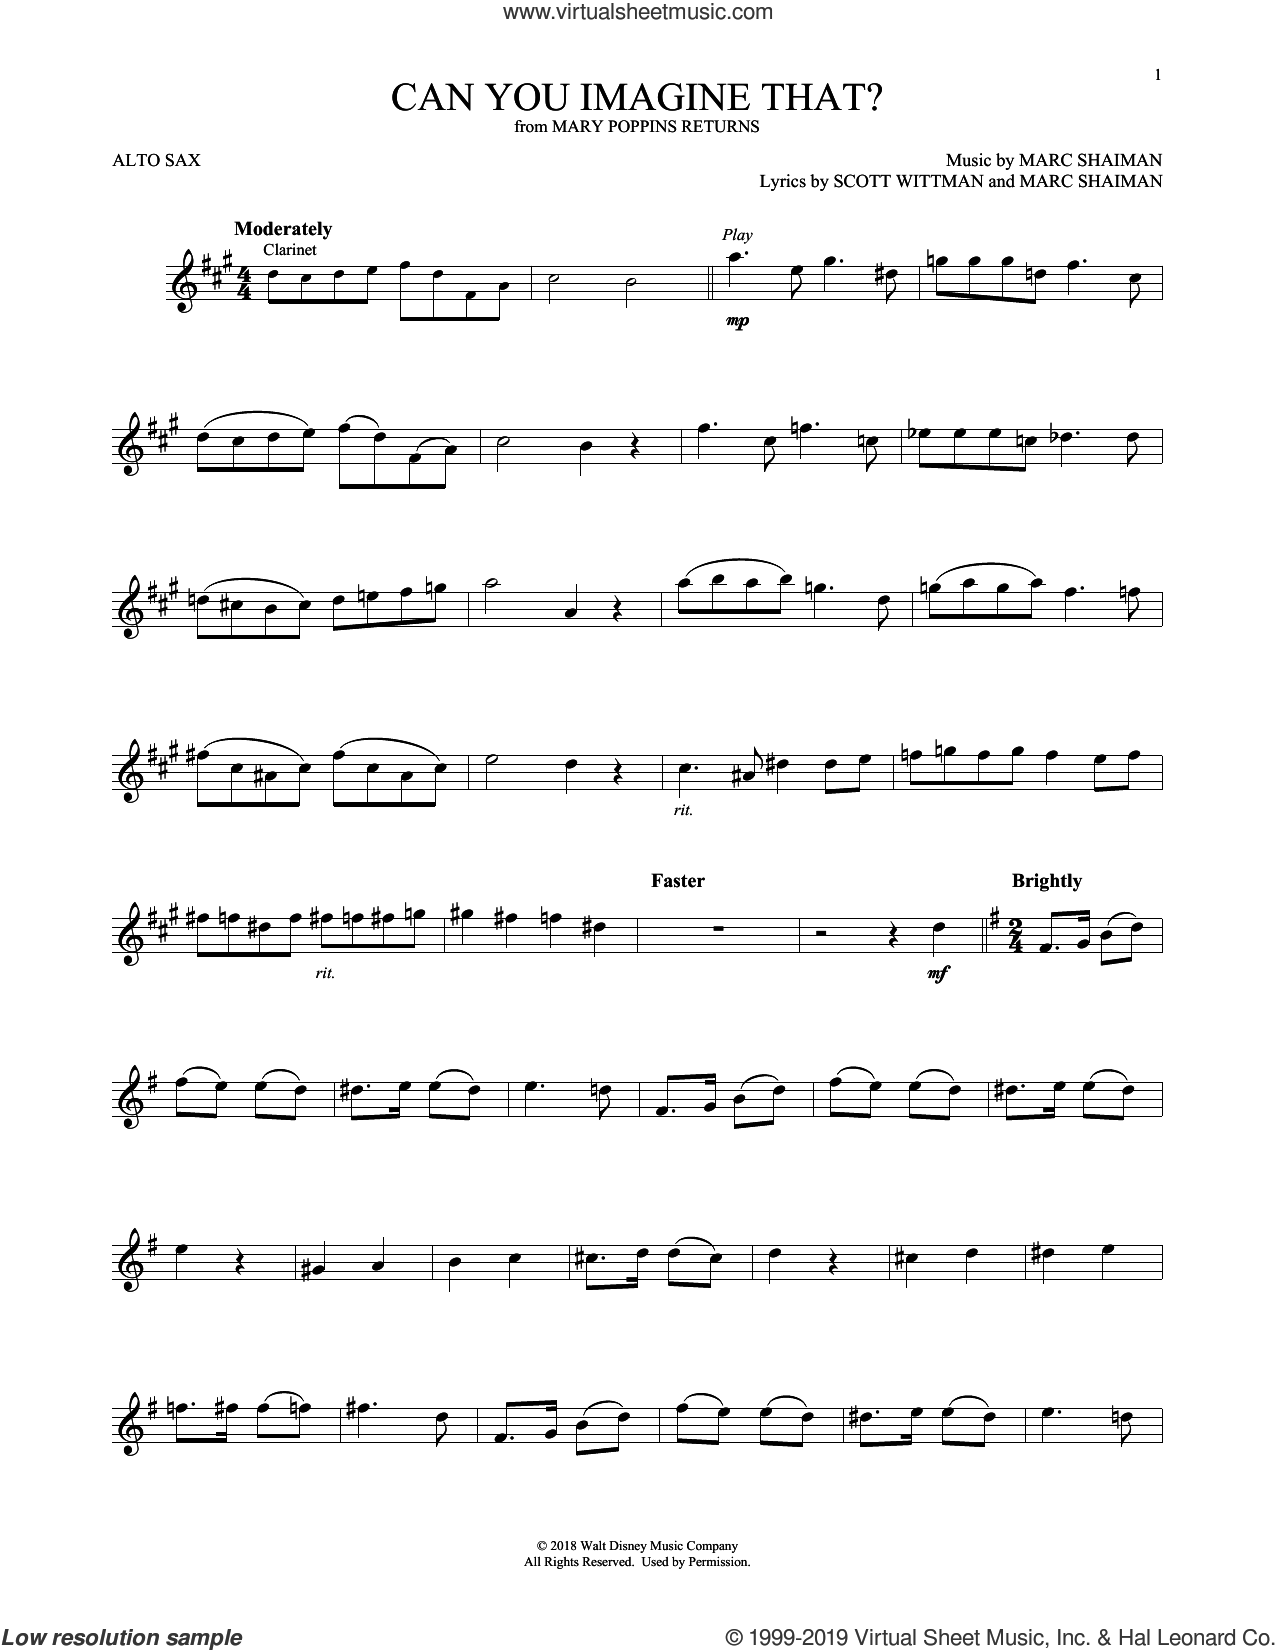 Can You Imagine That? (from Mary Poppins Returns) sheet music for alto saxophone solo by Emily Blunt & Company, Marc Shaiman and Scott Wittman, intermediate skill level